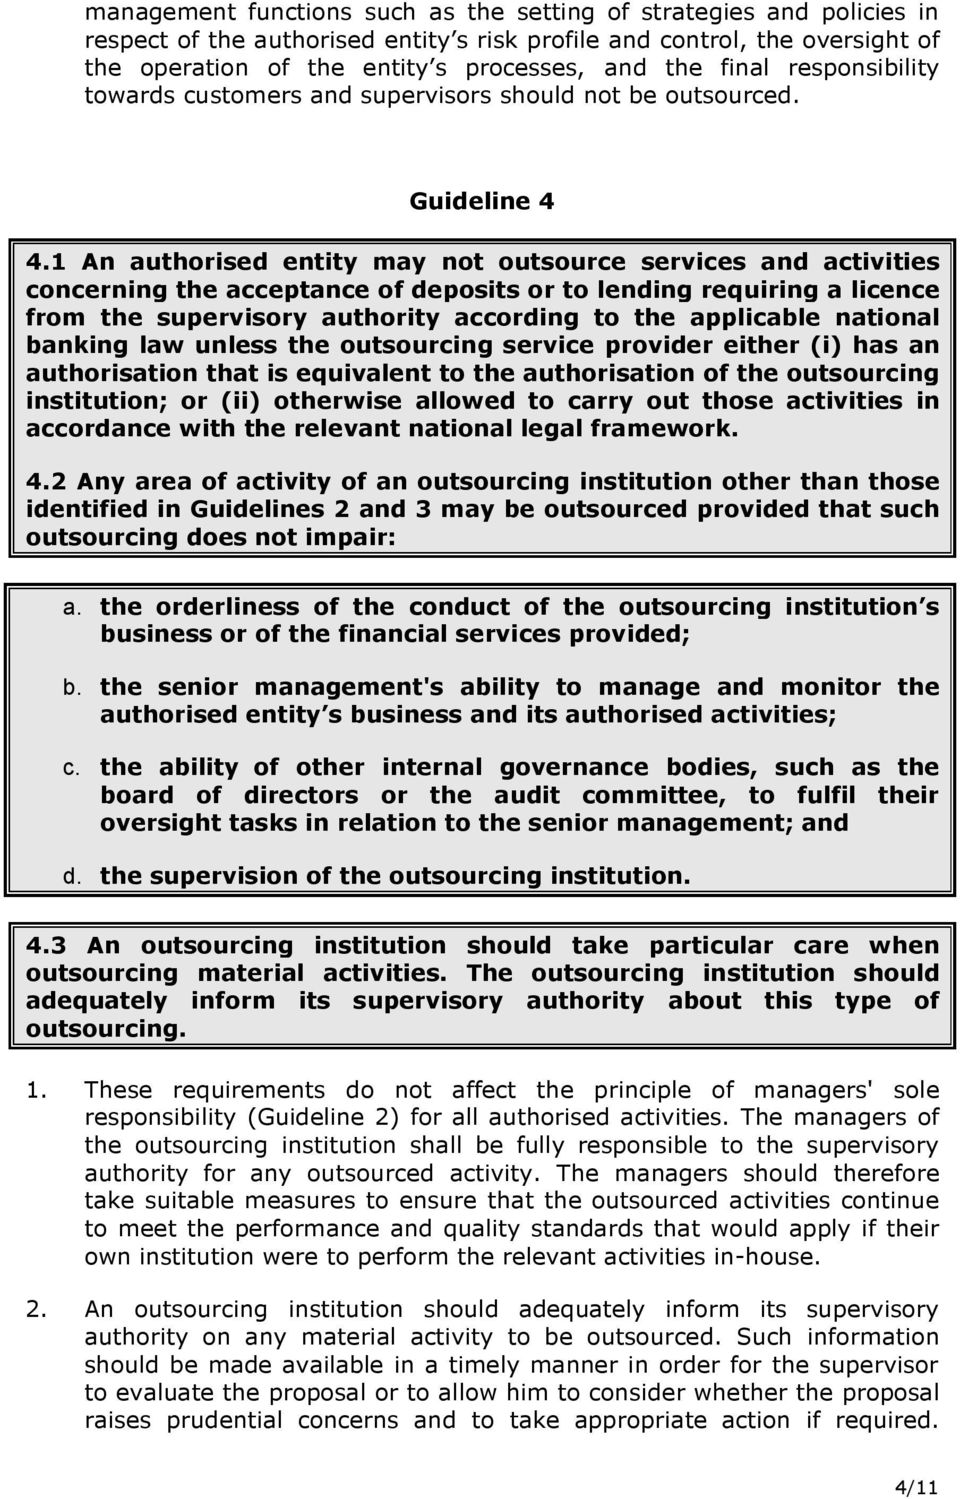 1 An authorised entity may not outsource services and activities concerning the acceptance of deposits or to lending requiring a licence from the supervisory authority according to the applicable